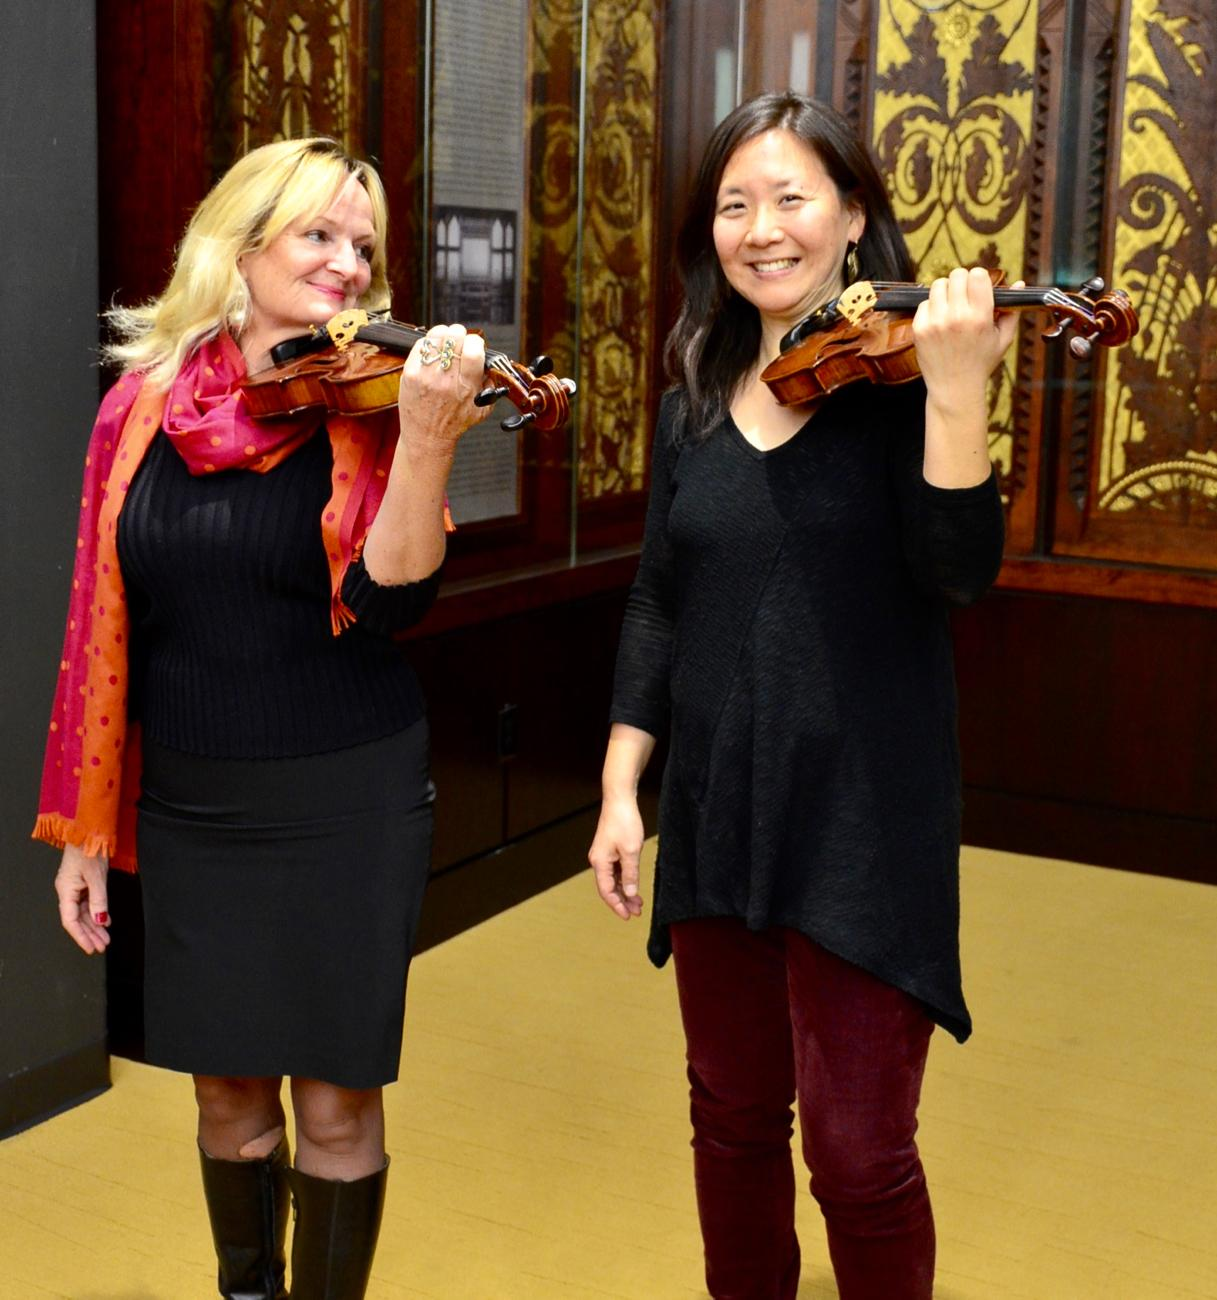 Heidi Yenney (Cincinnati Chamber Orchestra) and Sujean Kim (Cincinnati Chamber Orchestra) / Image: Leah Zipperstein, Cincinnati Refined // Published: 1.21.18